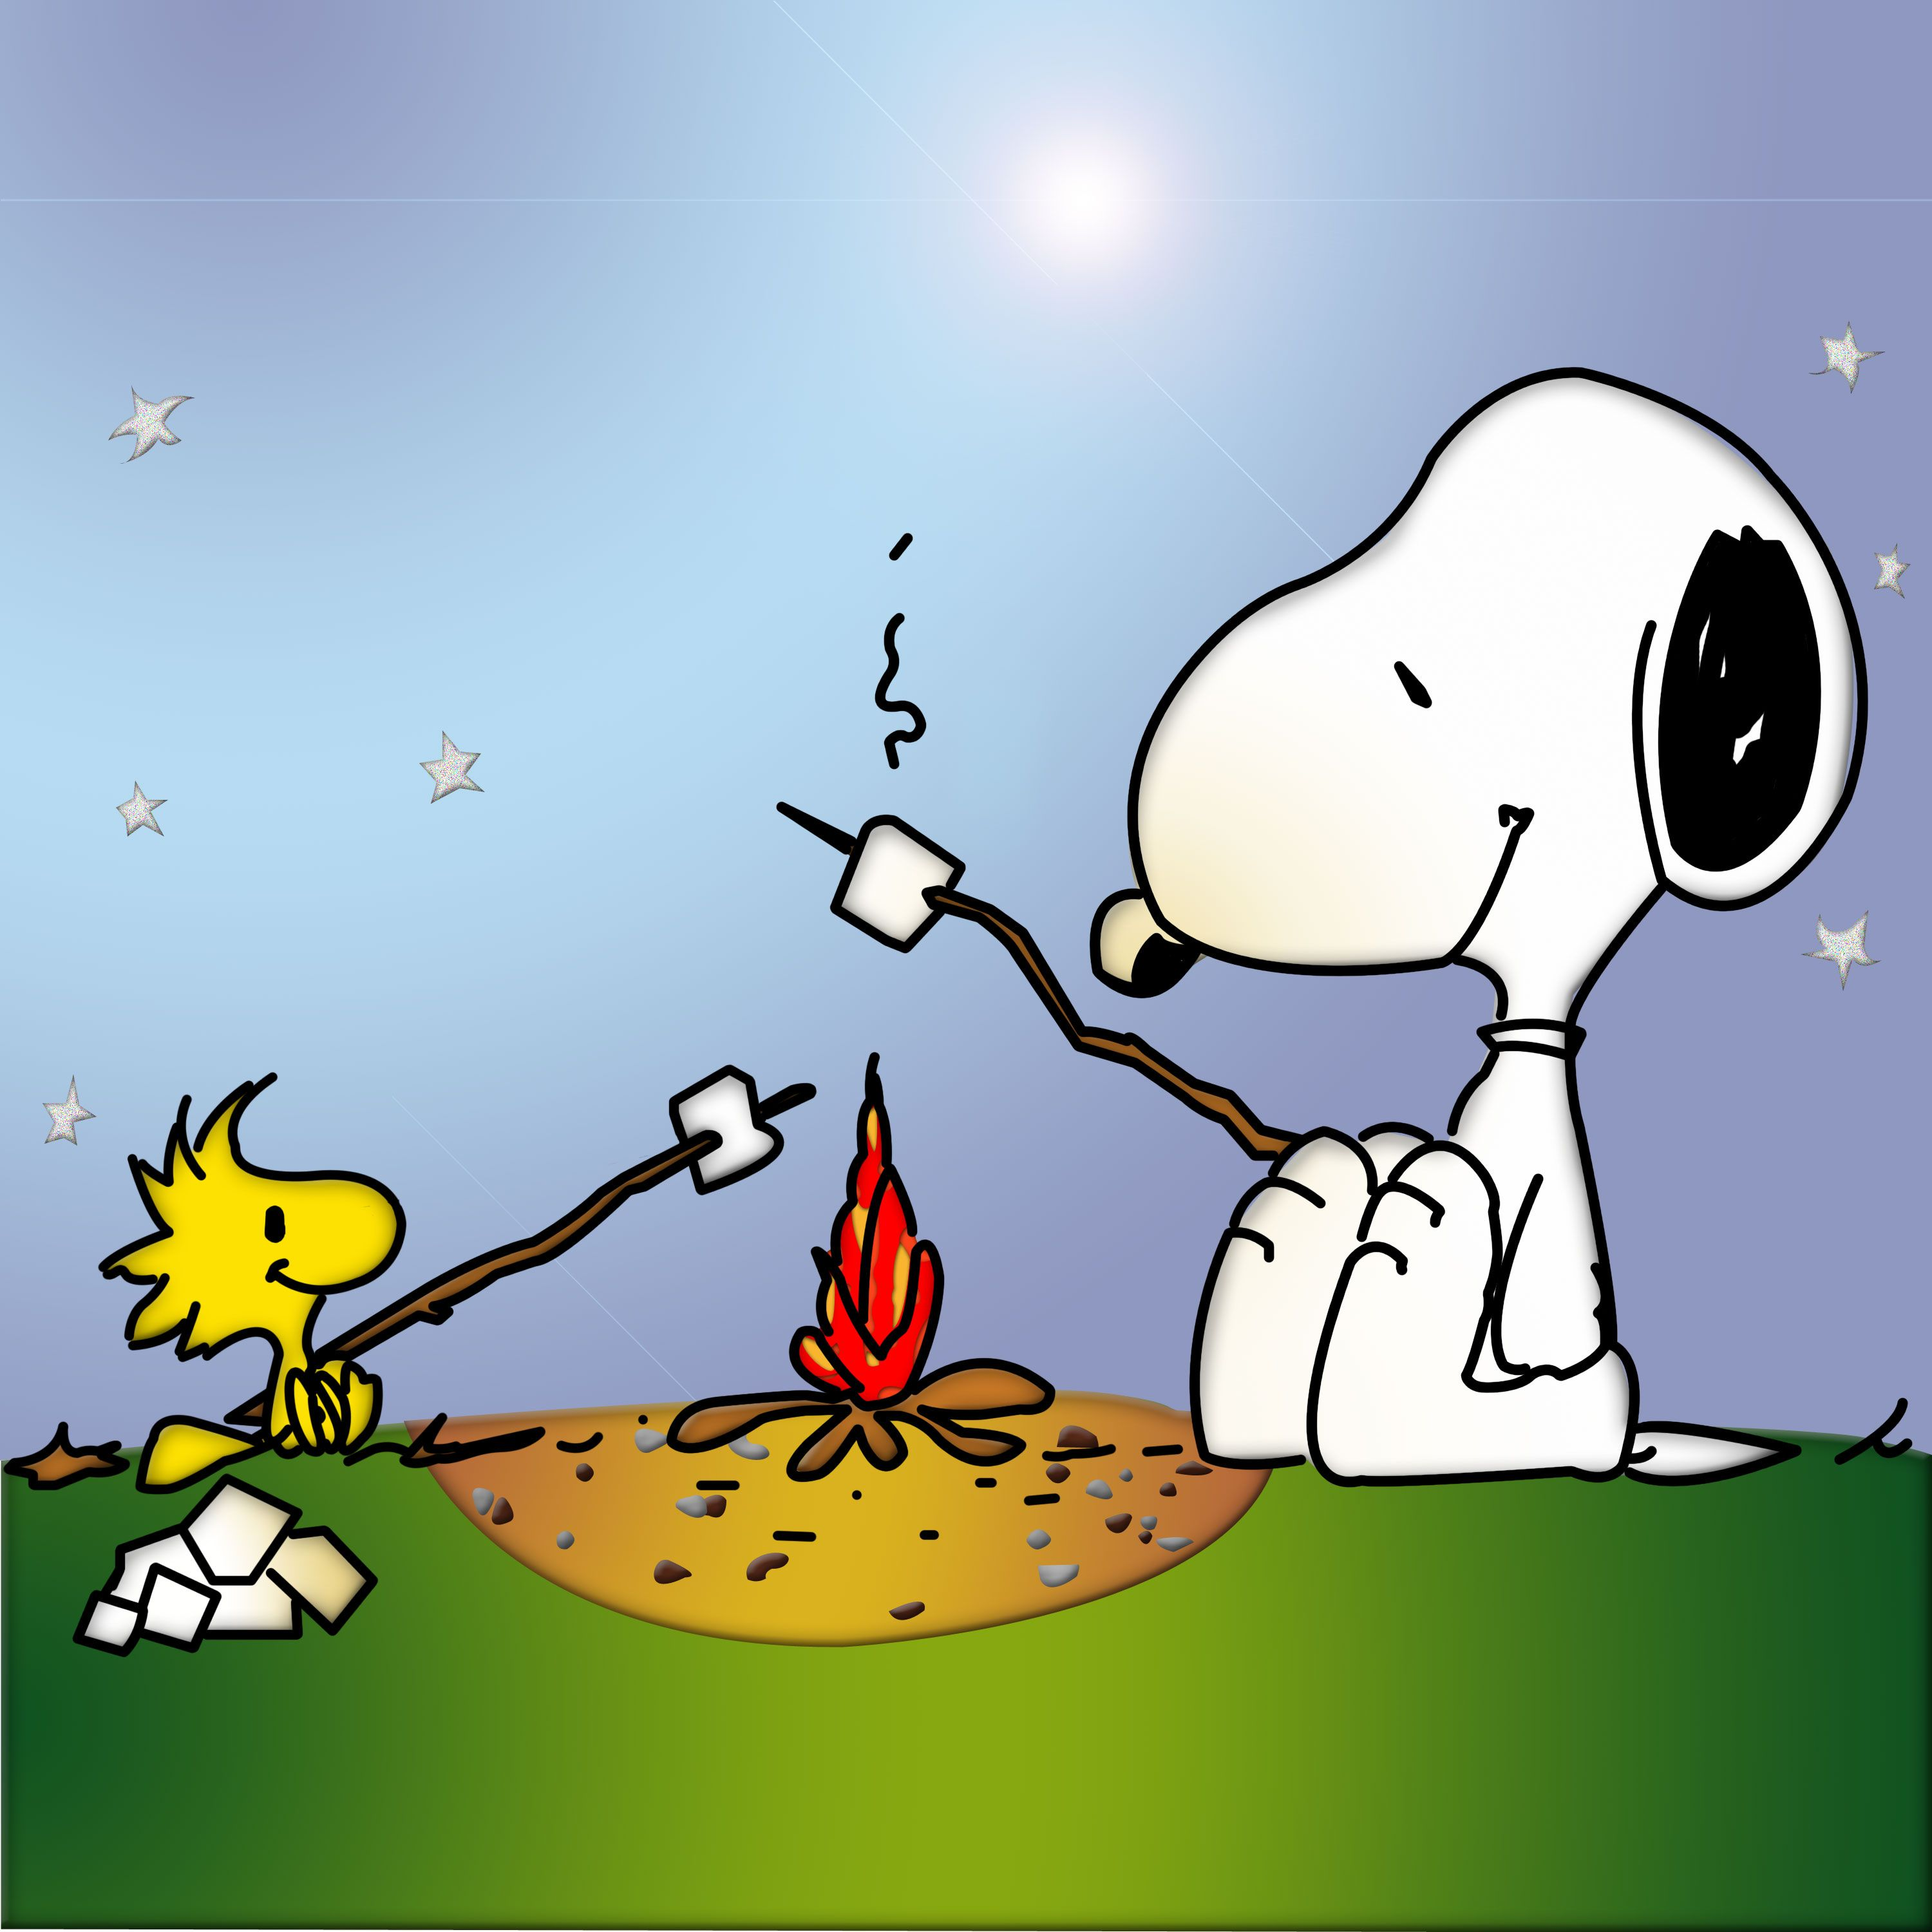 And woodstock by the. Camp clipart snoopy